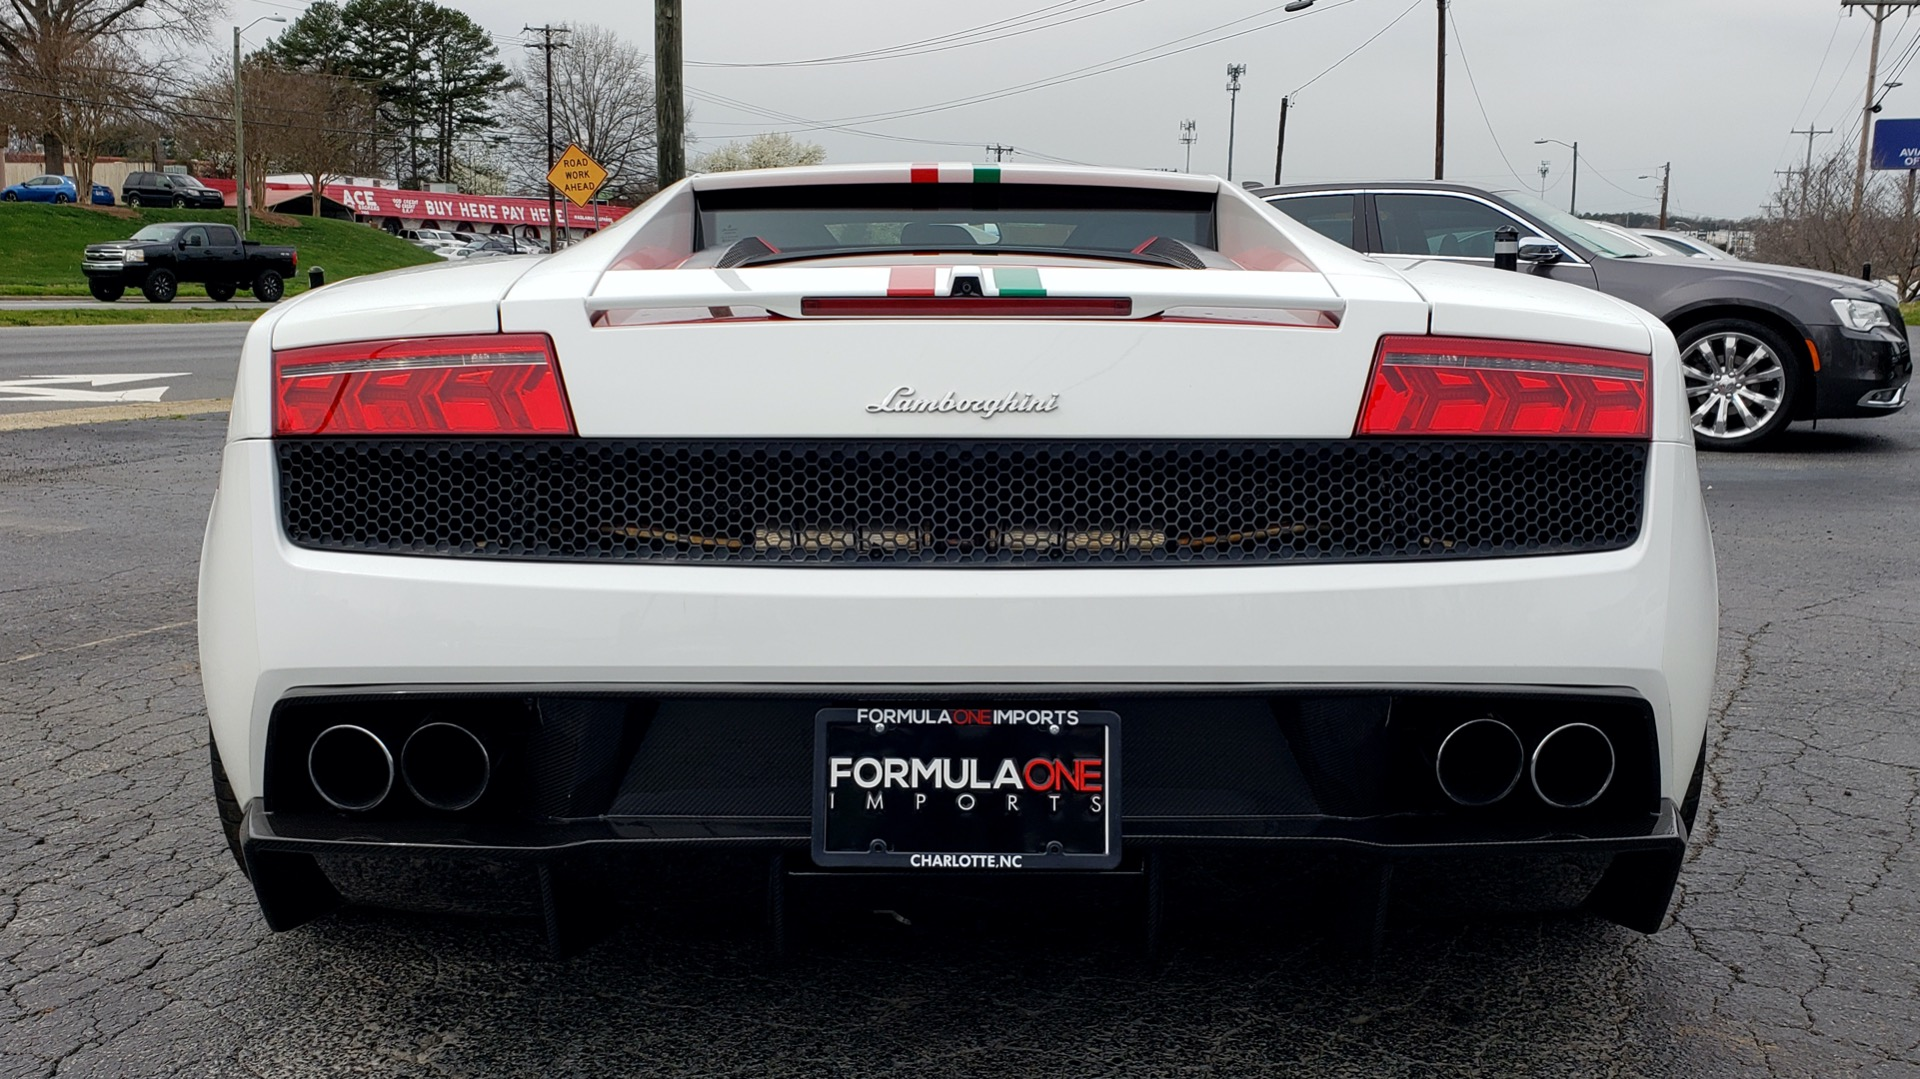 Used 2013 Lamborghini Gallardo LP560-4 560HP / AWD / NAV / CAMERA for sale Sold at Formula Imports in Charlotte NC 28227 7